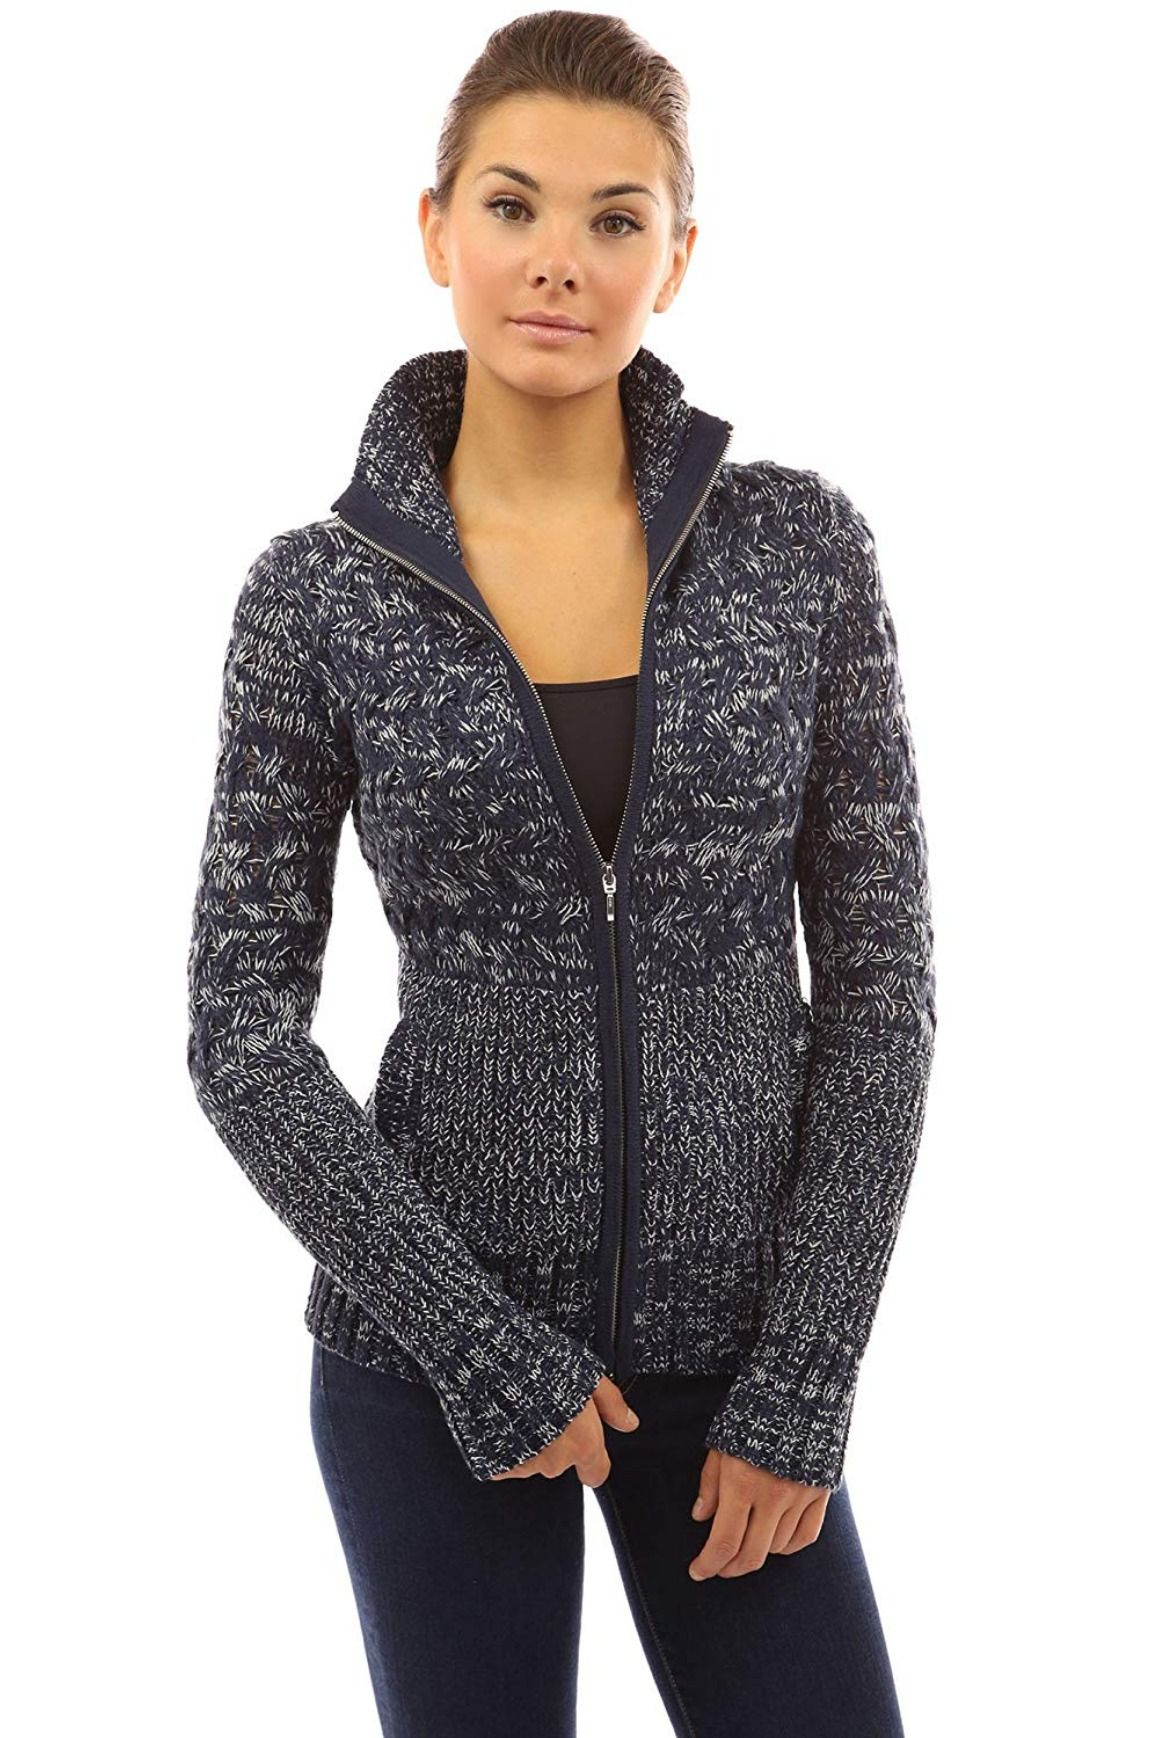 PattyBoutik Women s Mock Neck Marled Zip Up Cardigan 4.1 out of 5 stars 92  customer reviews Price   49.99 ecd5c09ef